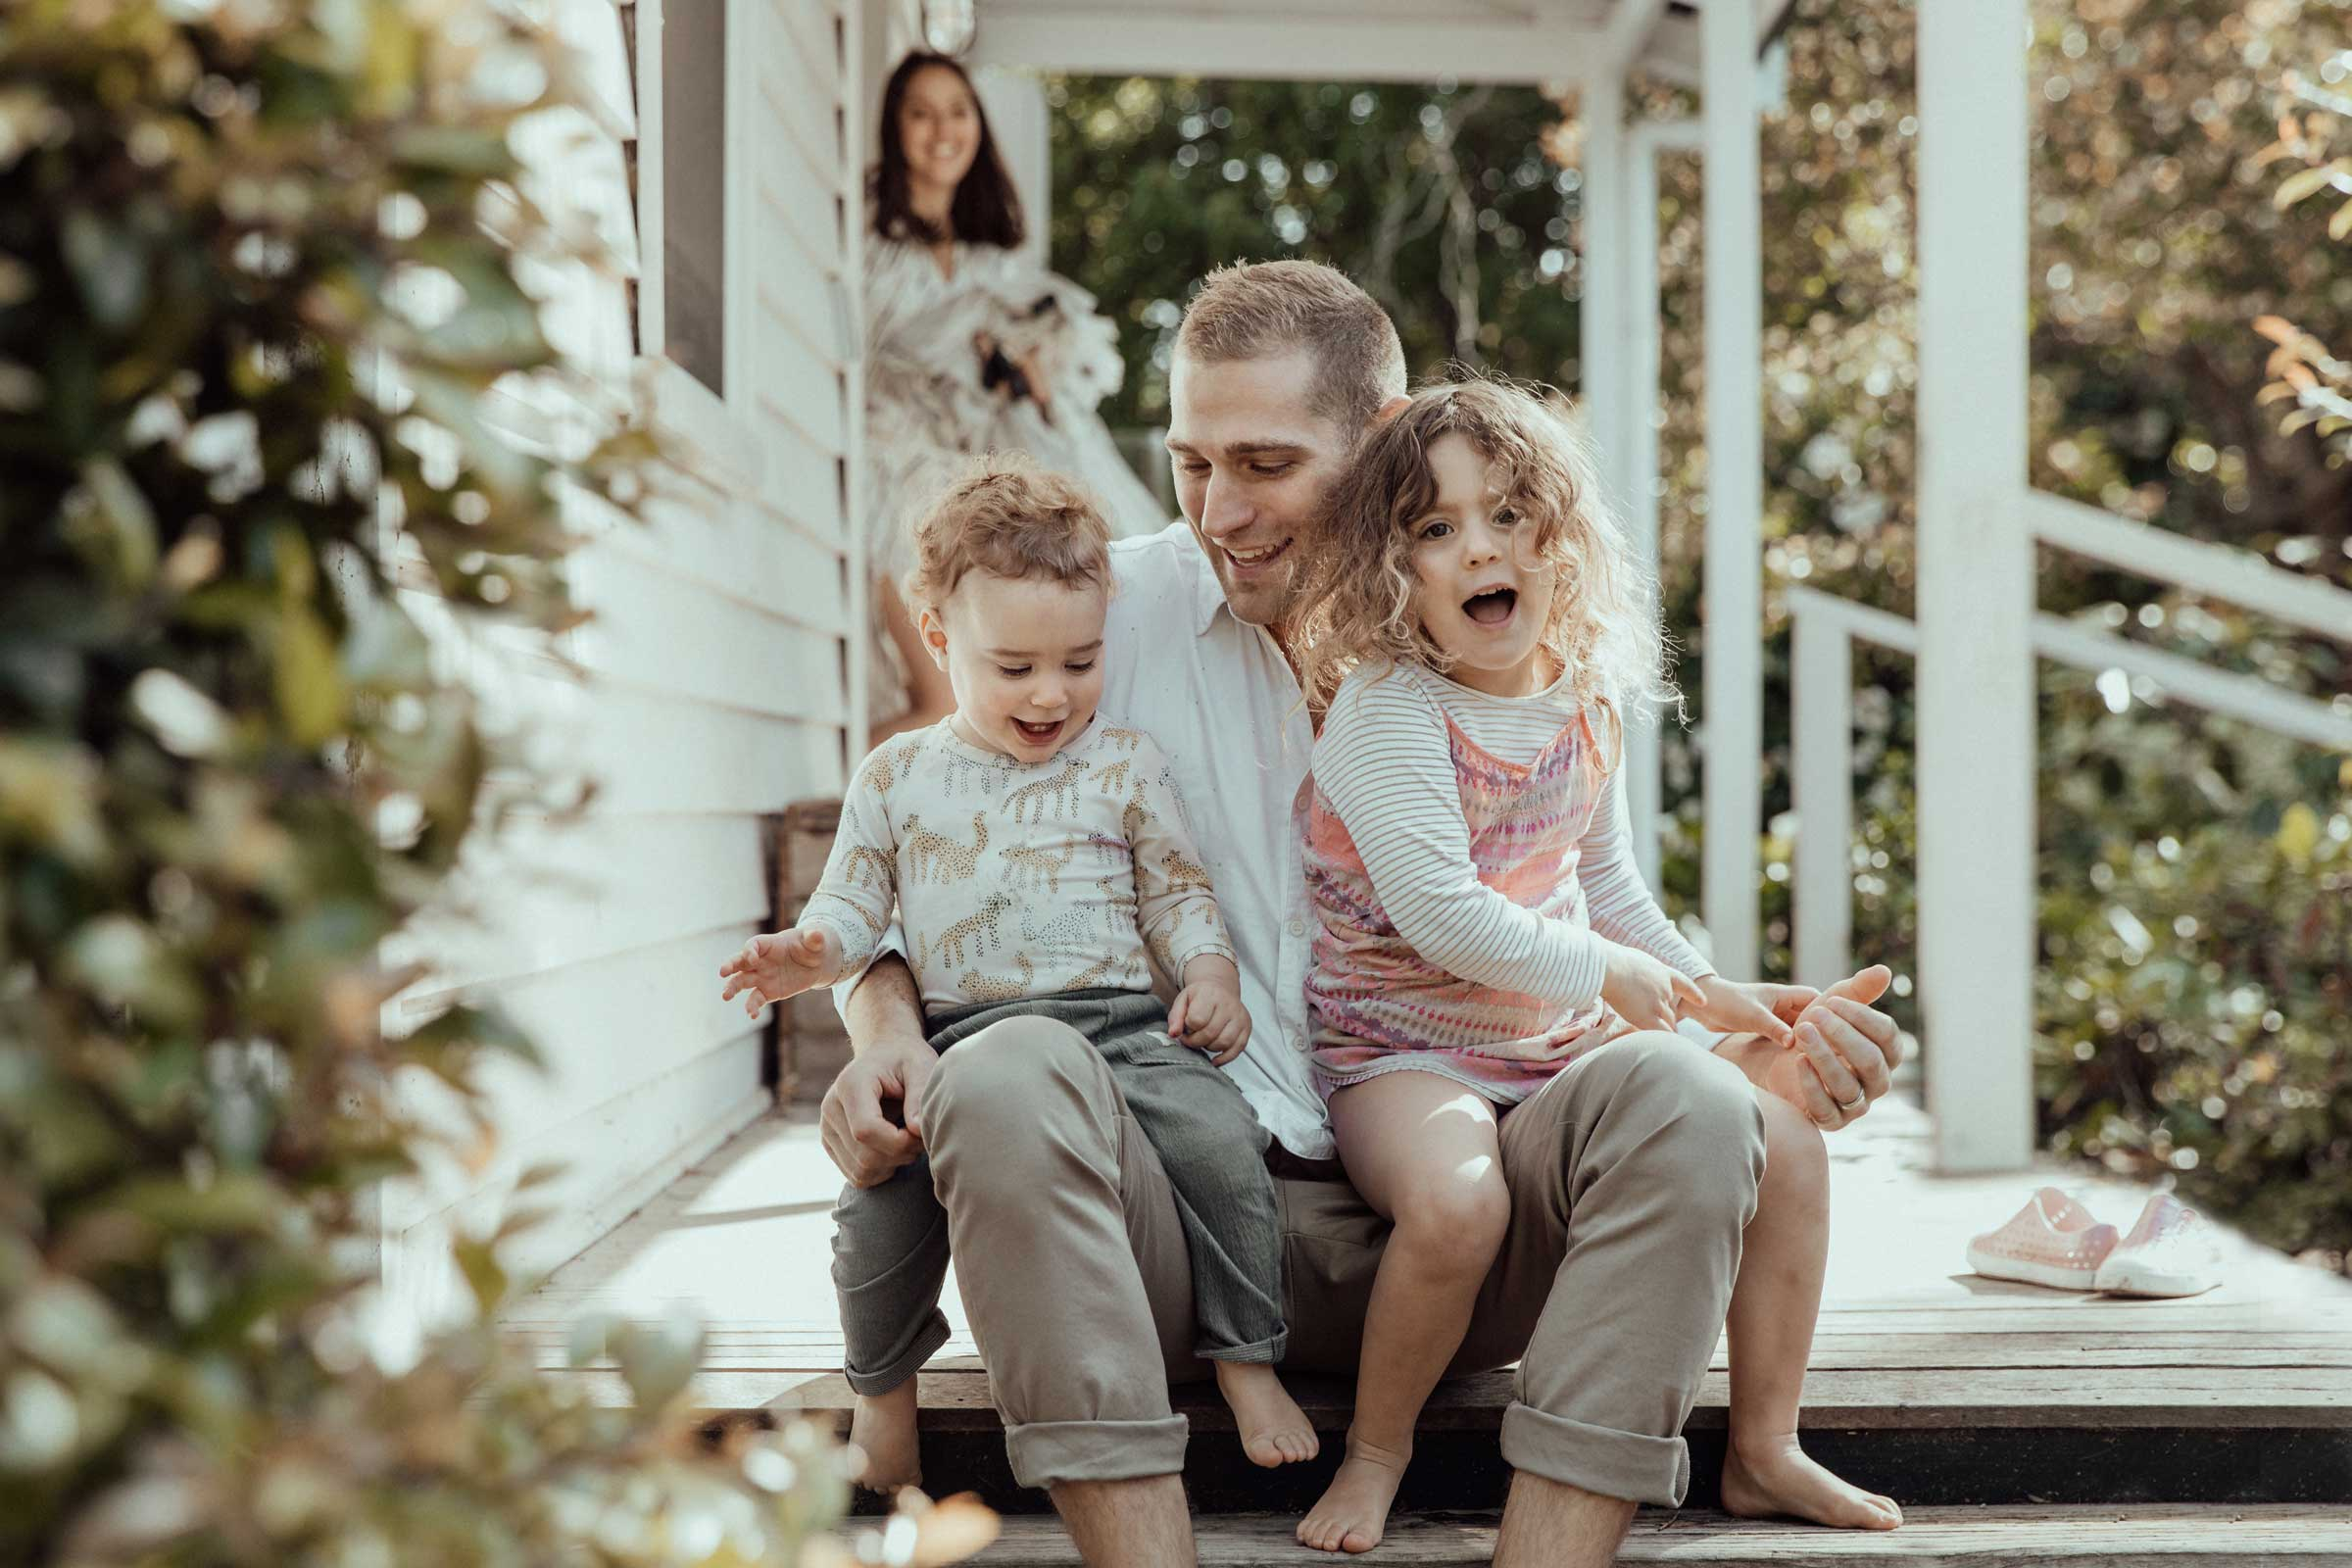 home-family-photography-session-lifestyle-60